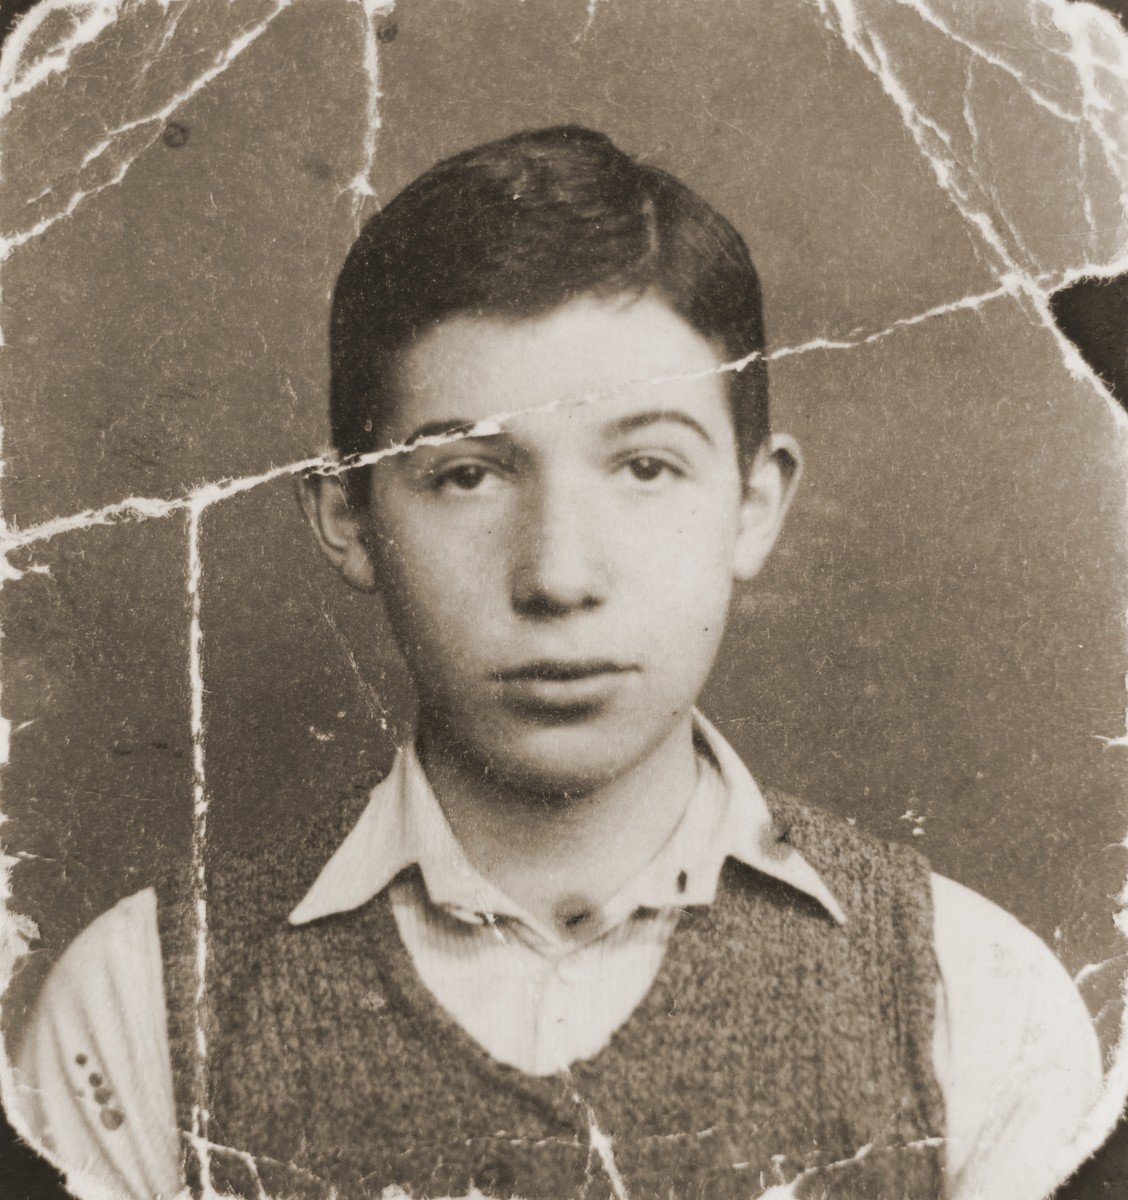 Damaged photograph of Dov Levin, a Jewish school boy in ... Old Damaged Black And White Photos